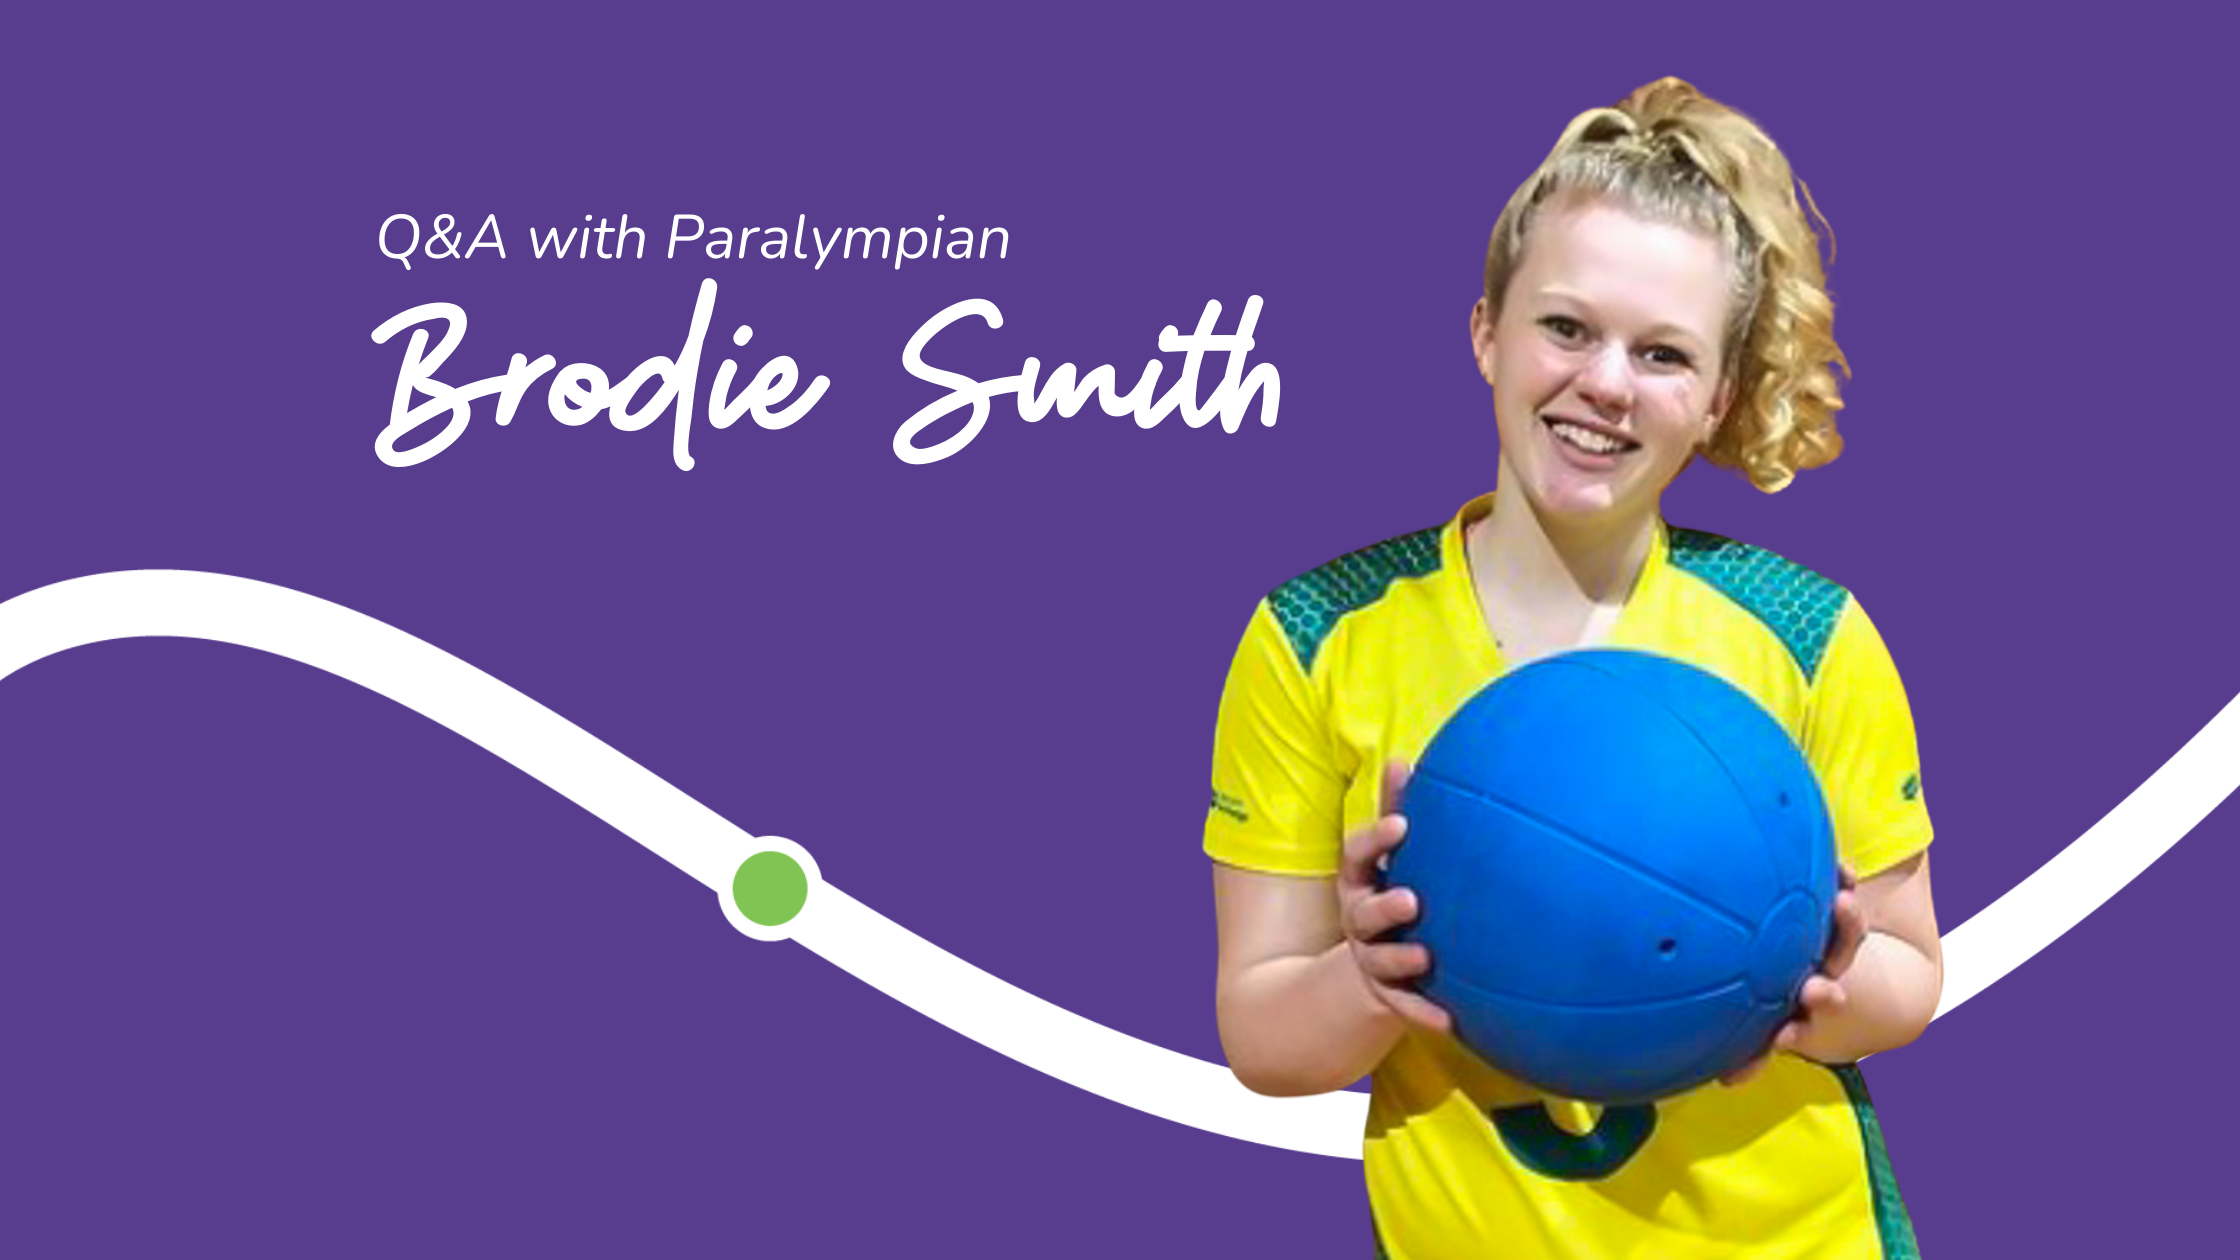 Q&A with Paralympian Brodie Smith